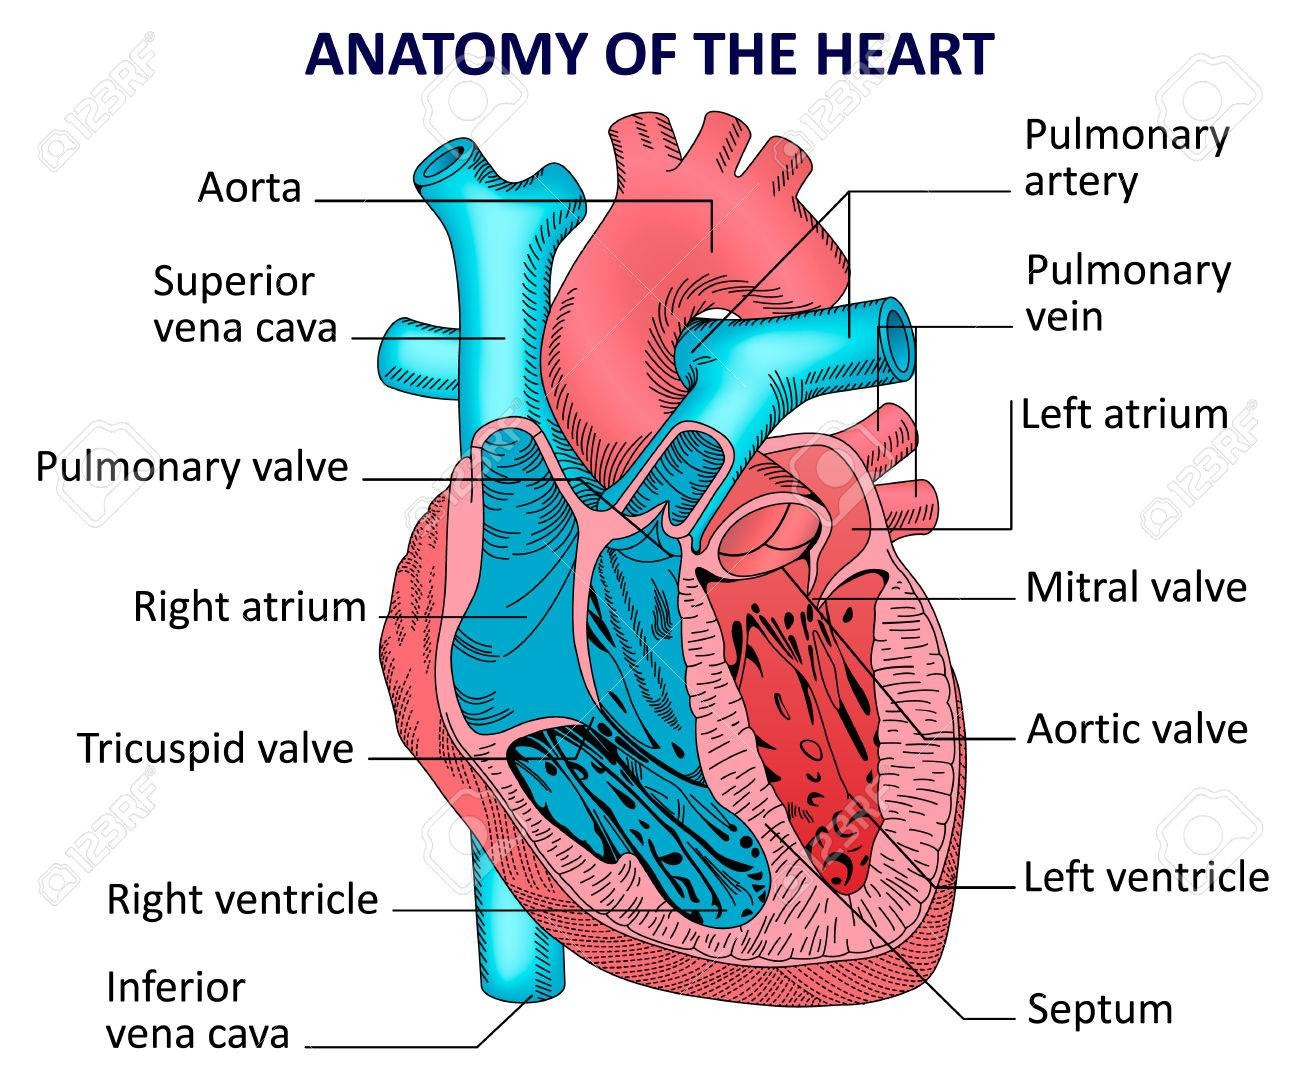 Aortic Valve And Mitral Valve Location Diagram